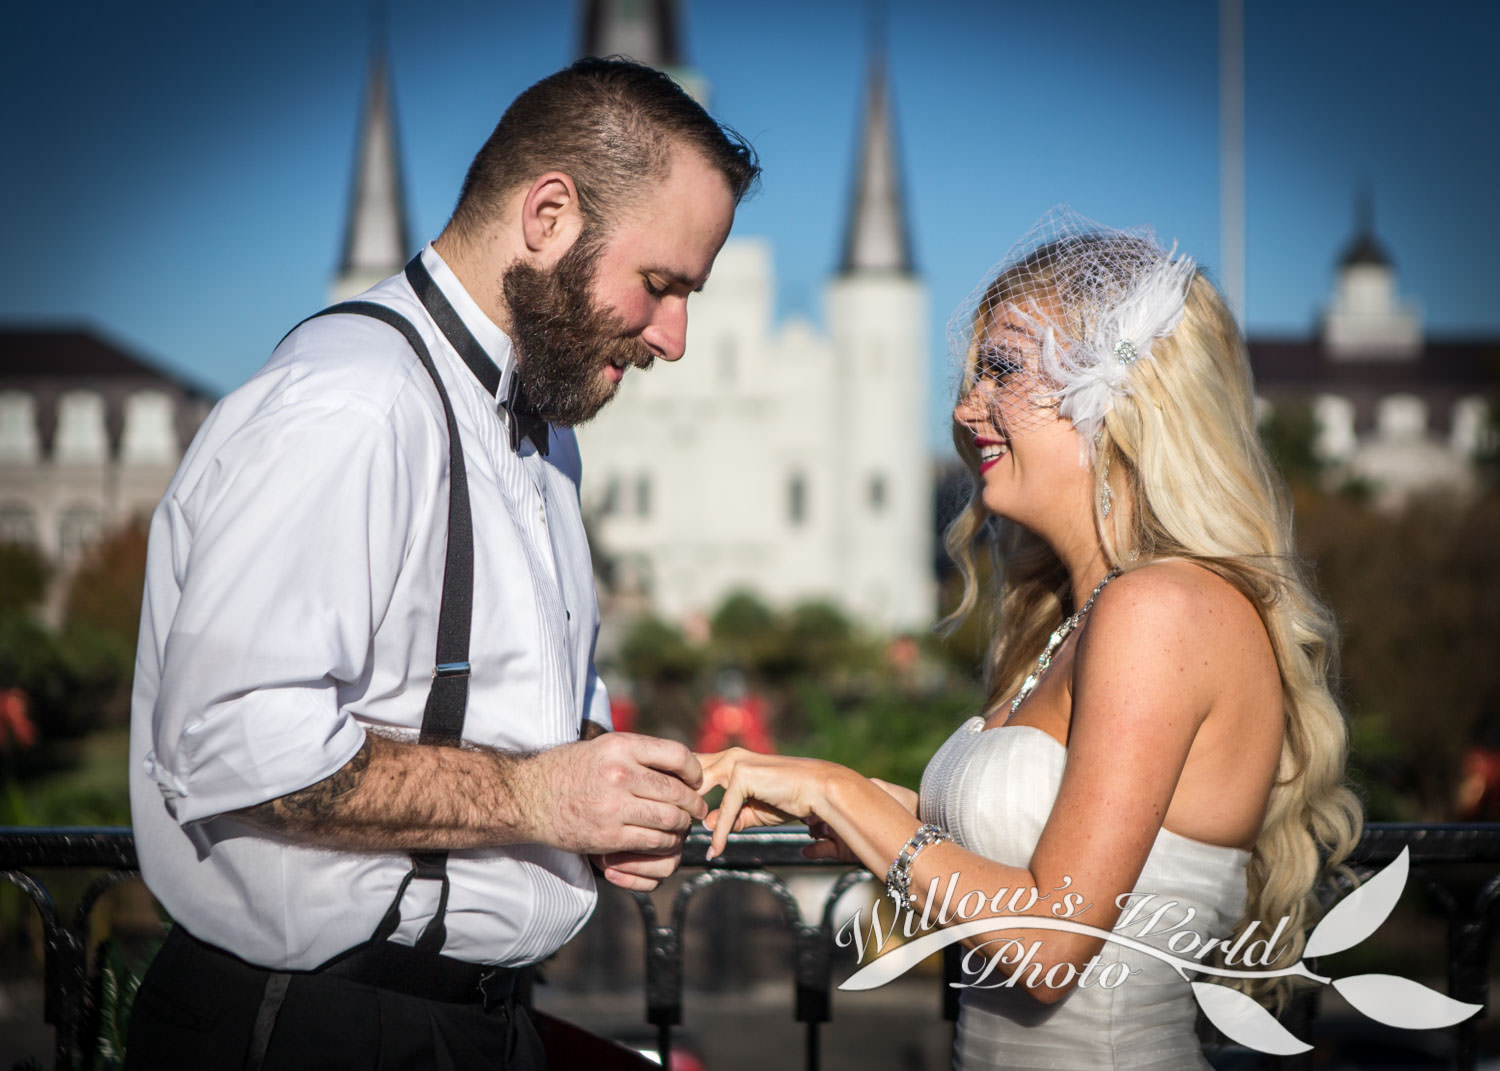 Lo and Major New Orleans Wedding WIllowsWorldPhoto-13.jpg